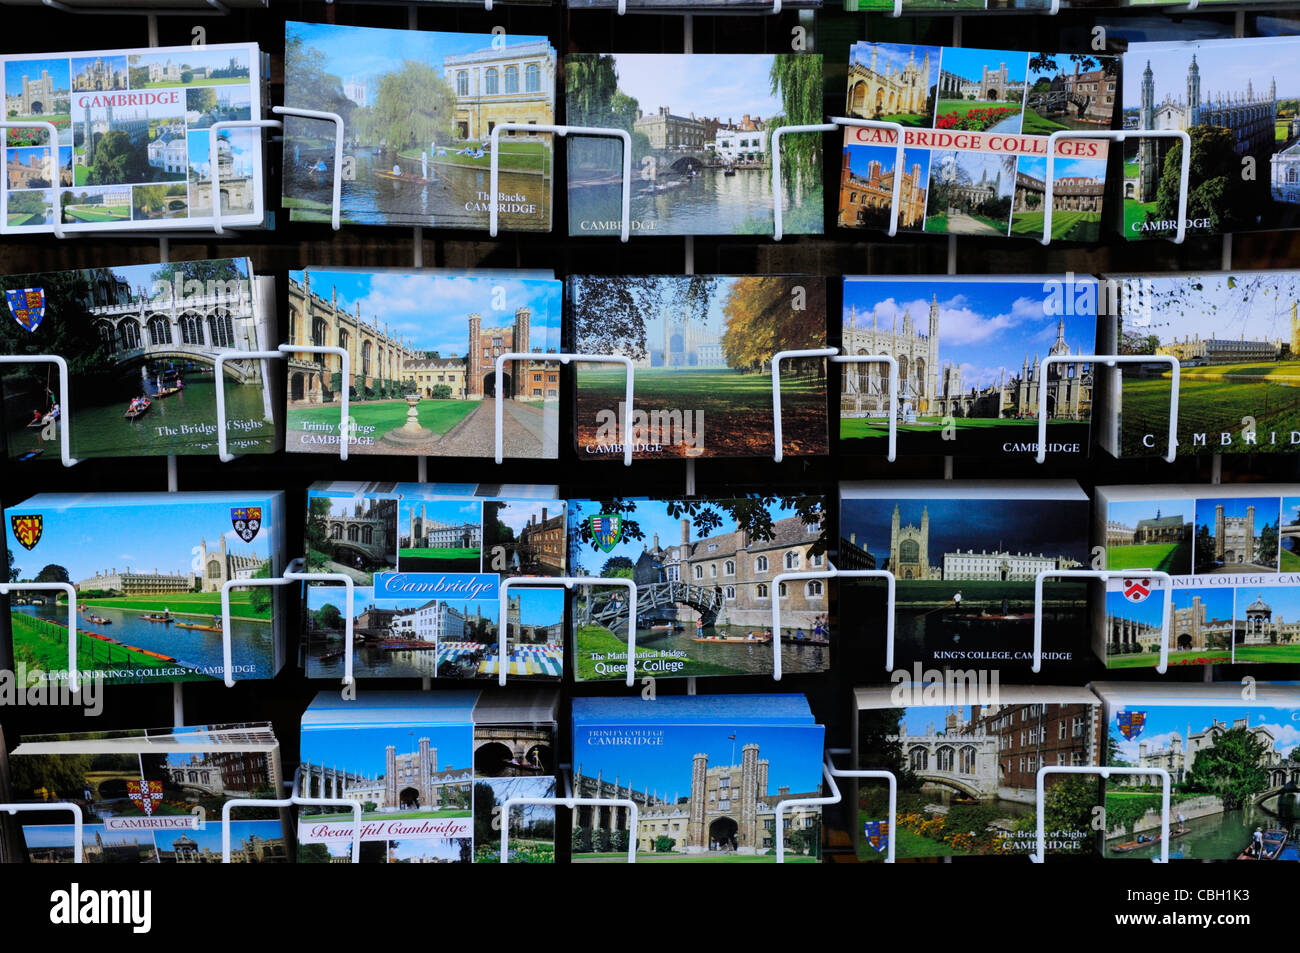 Postcards of Cambridge, Cambridge, England, UK - Stock Image